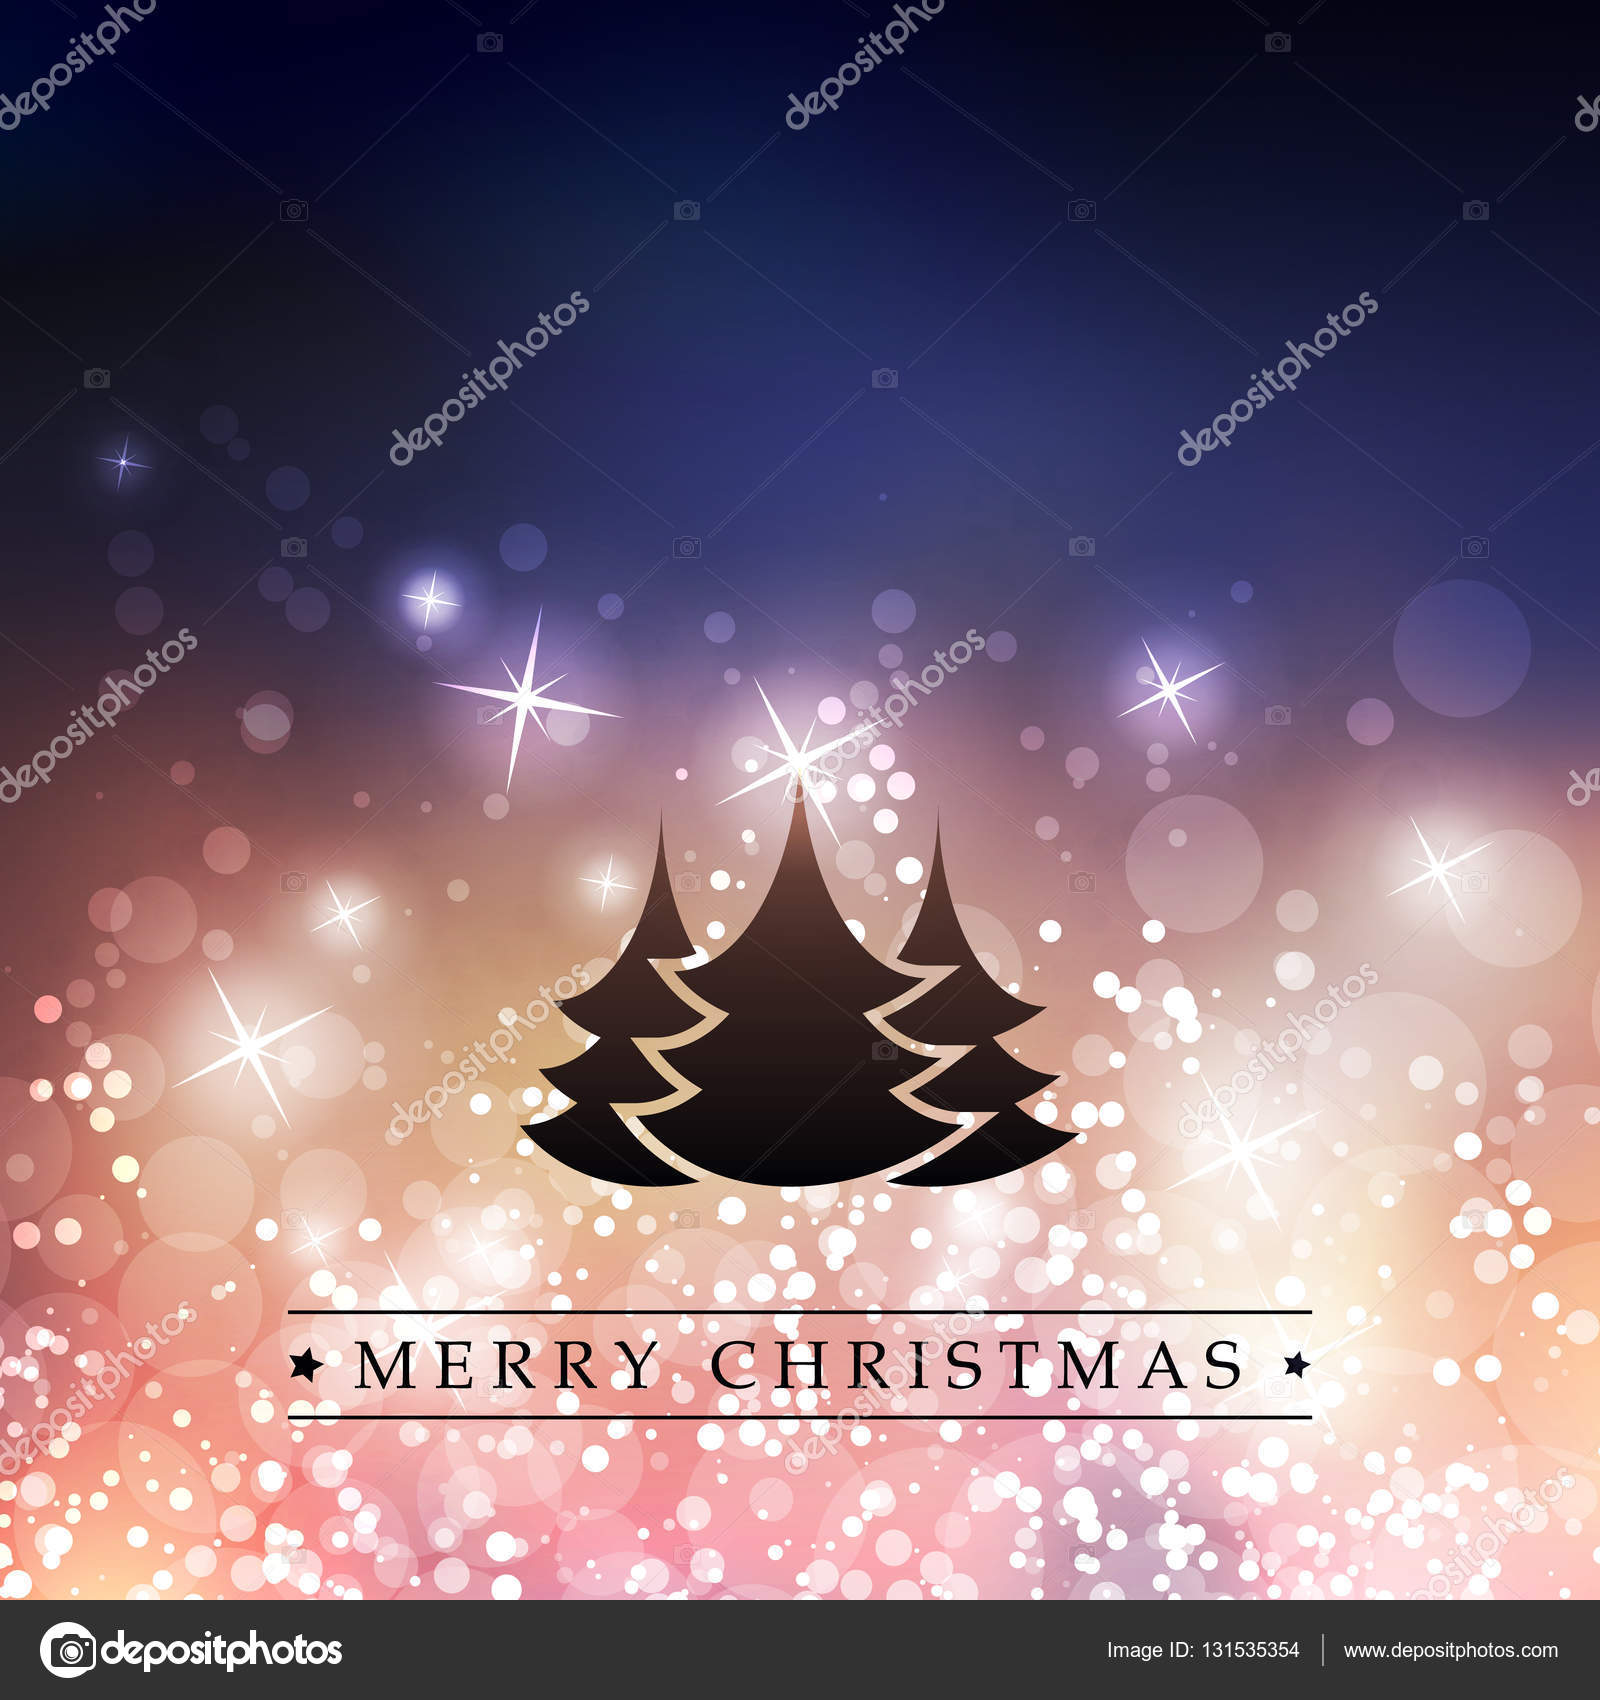 Colorful happy holidays merry christmas greeting card with label colorful happy holidays merry christmas greeting card with label christmas tree on a sparkling m4hsunfo